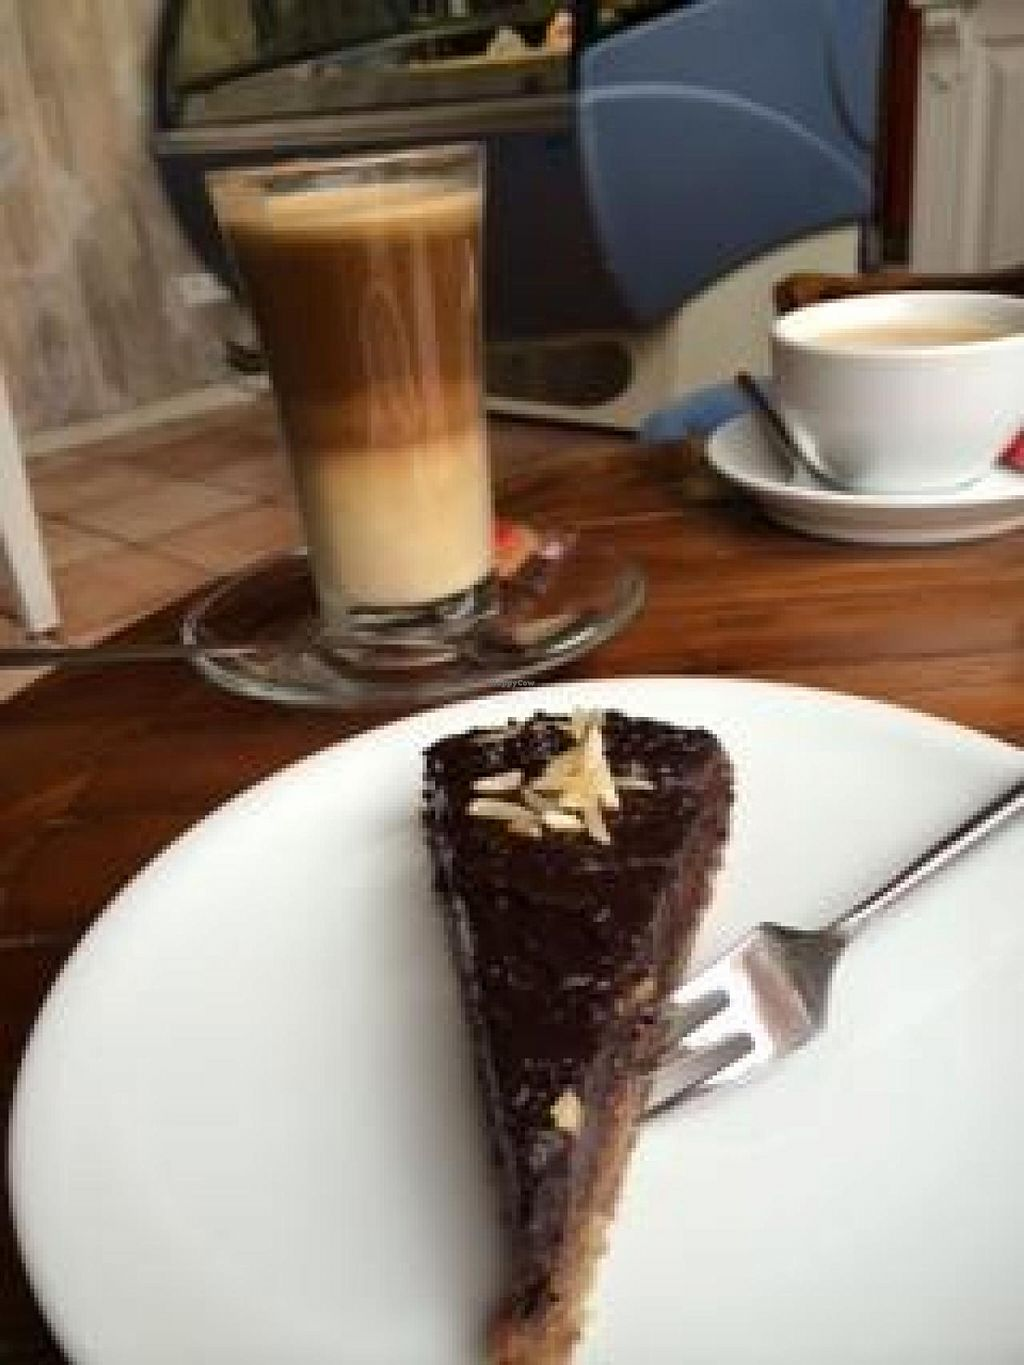 """Photo of Liberty Eiscafe and Bistro - Am Fischmarkt  by <a href=""""/members/profile/Plantpower"""">Plantpower</a> <br/>Raw cake and oat milk latte <br/> October 31, 2014  - <a href='/contact/abuse/image/40091/84271'>Report</a>"""